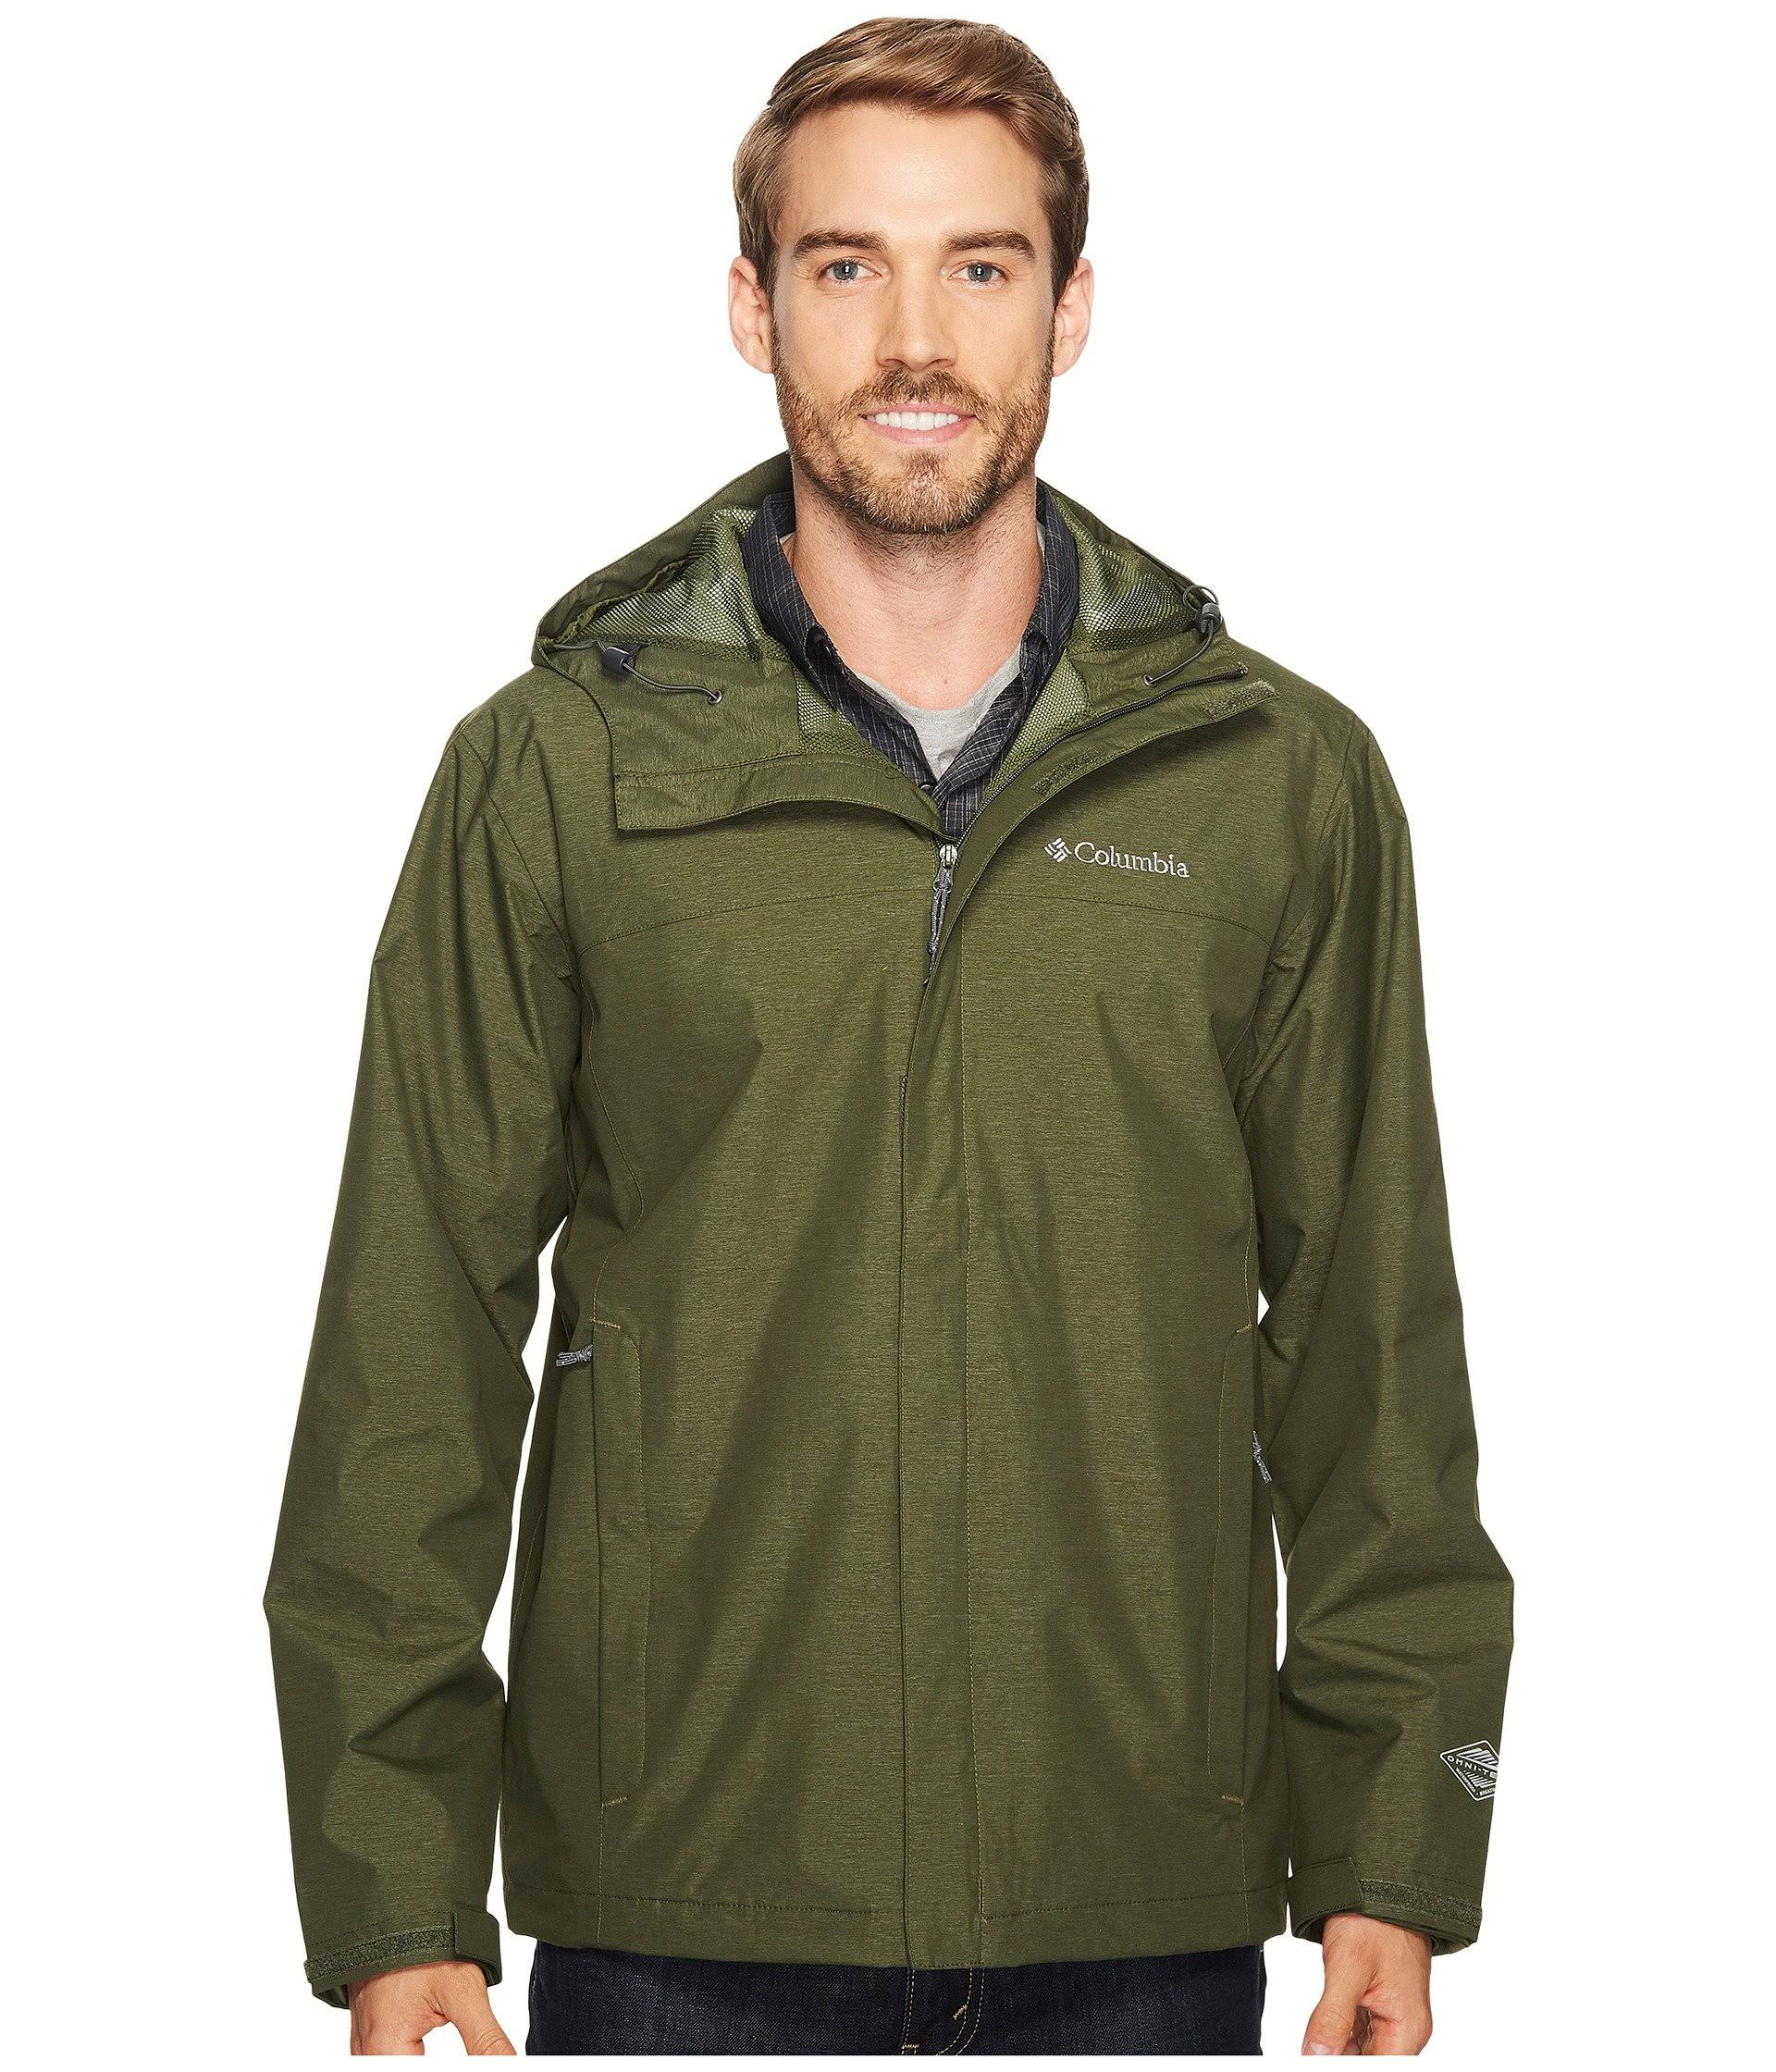 Color Rain Creek Diablo Elige Men Sz Columbia Shell q0azp1